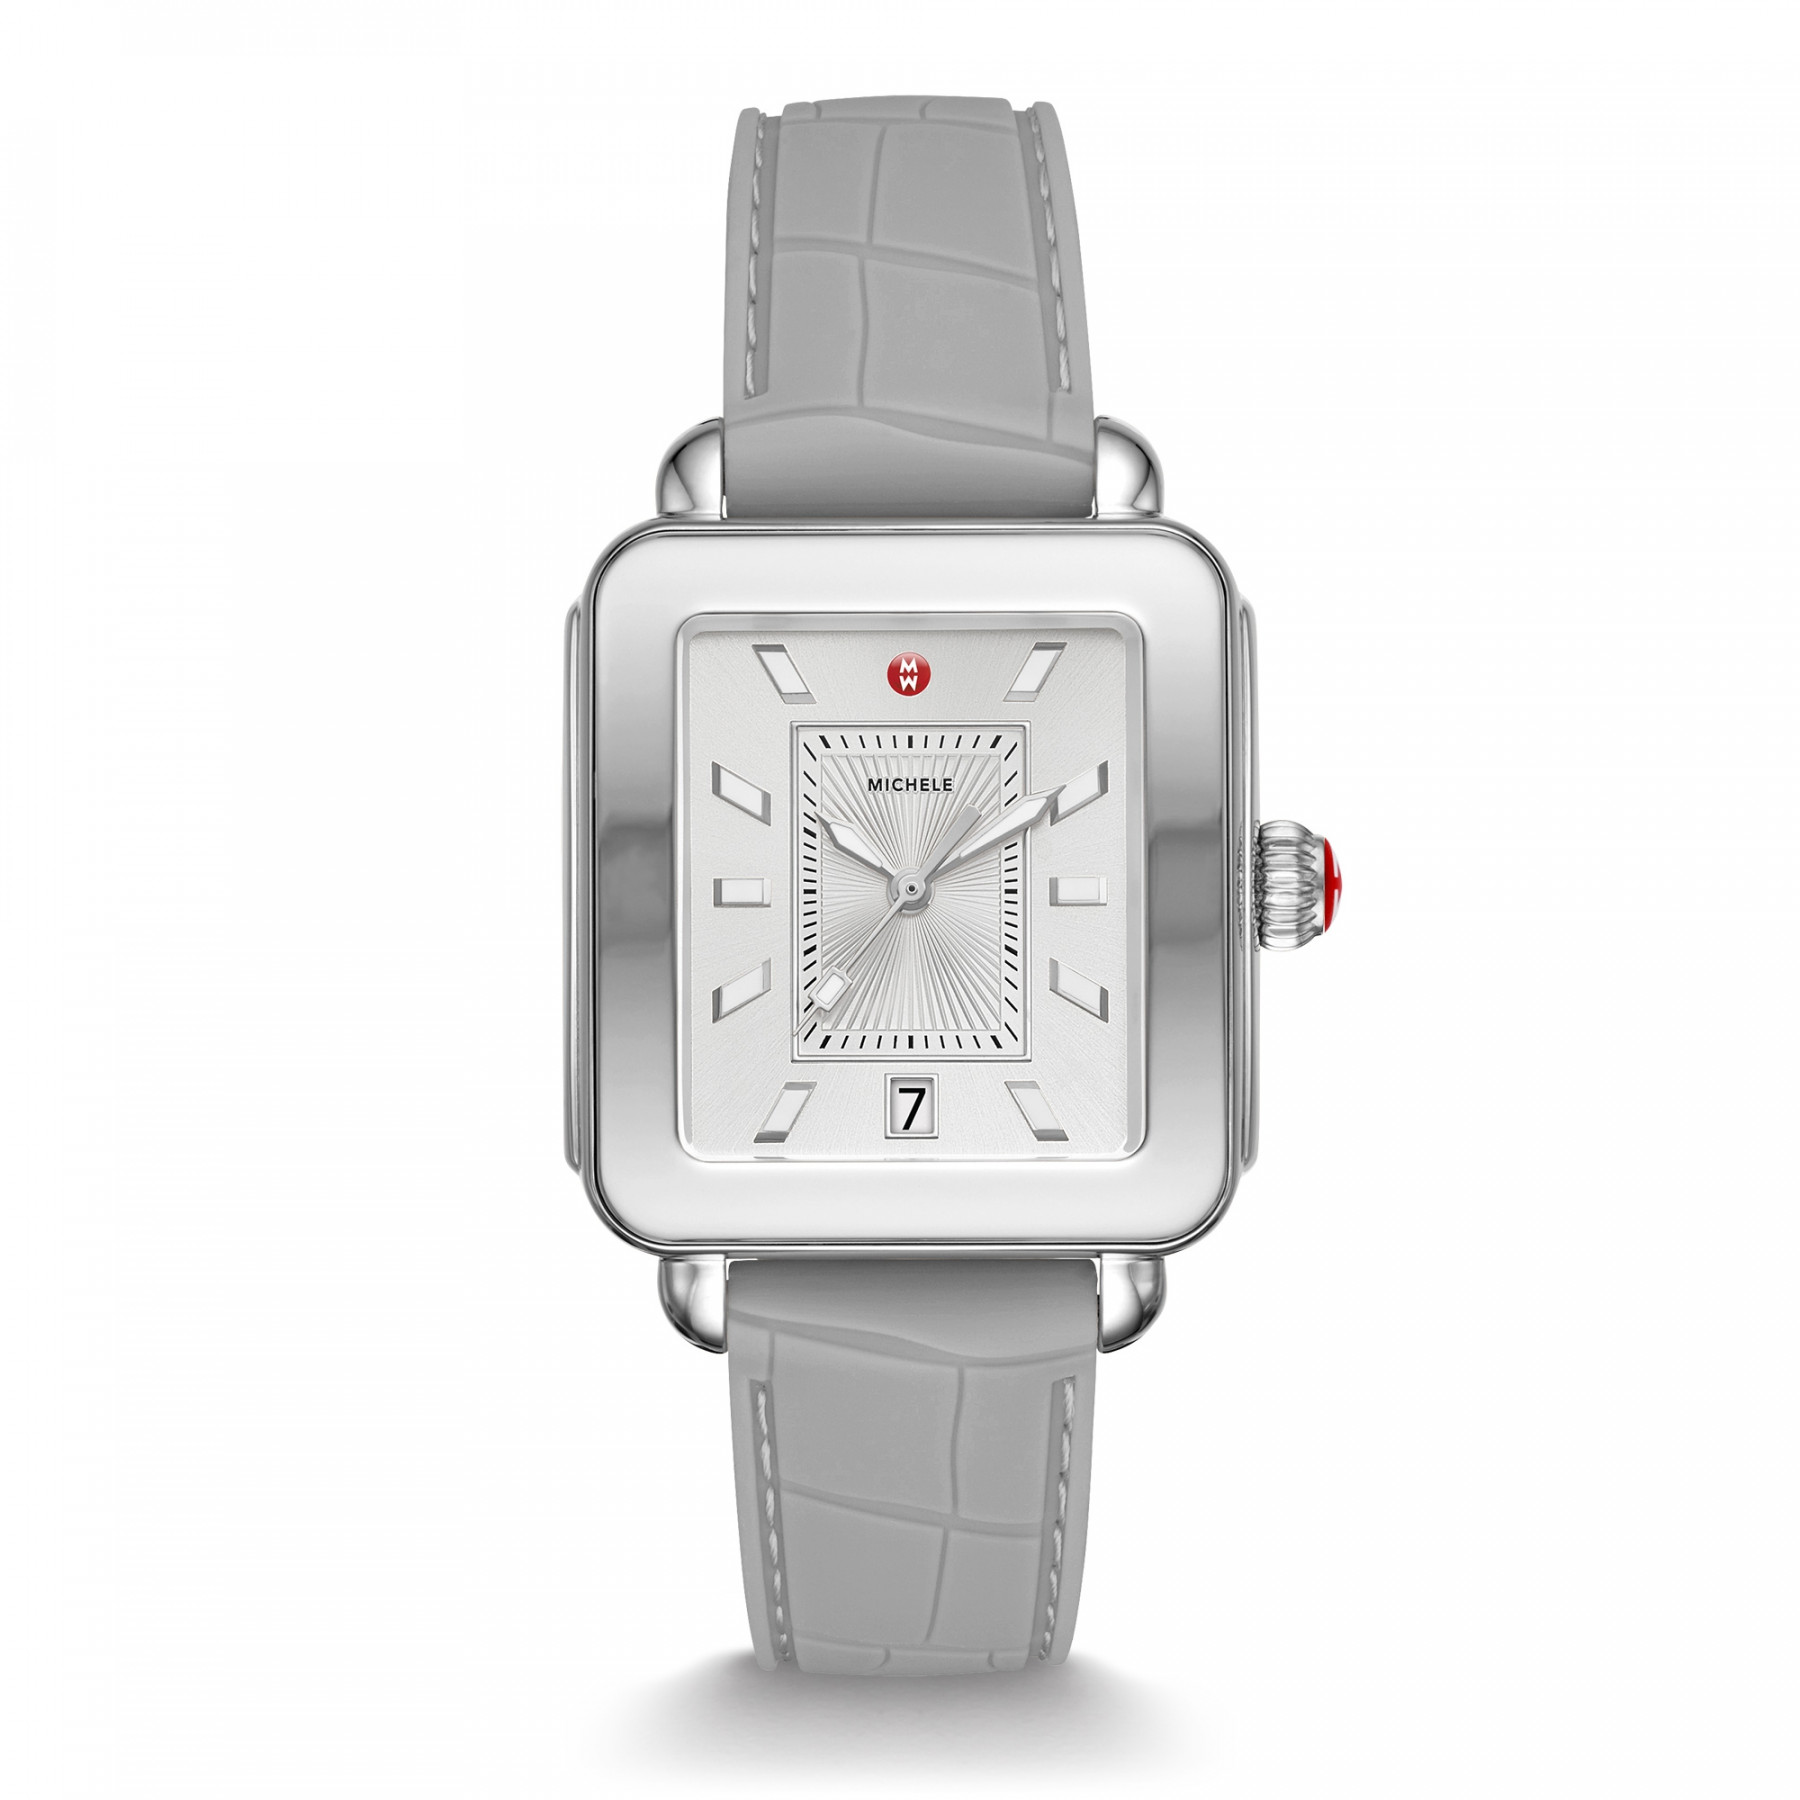 Michele Deco Sport Light Grey Watch with Rubber Strap